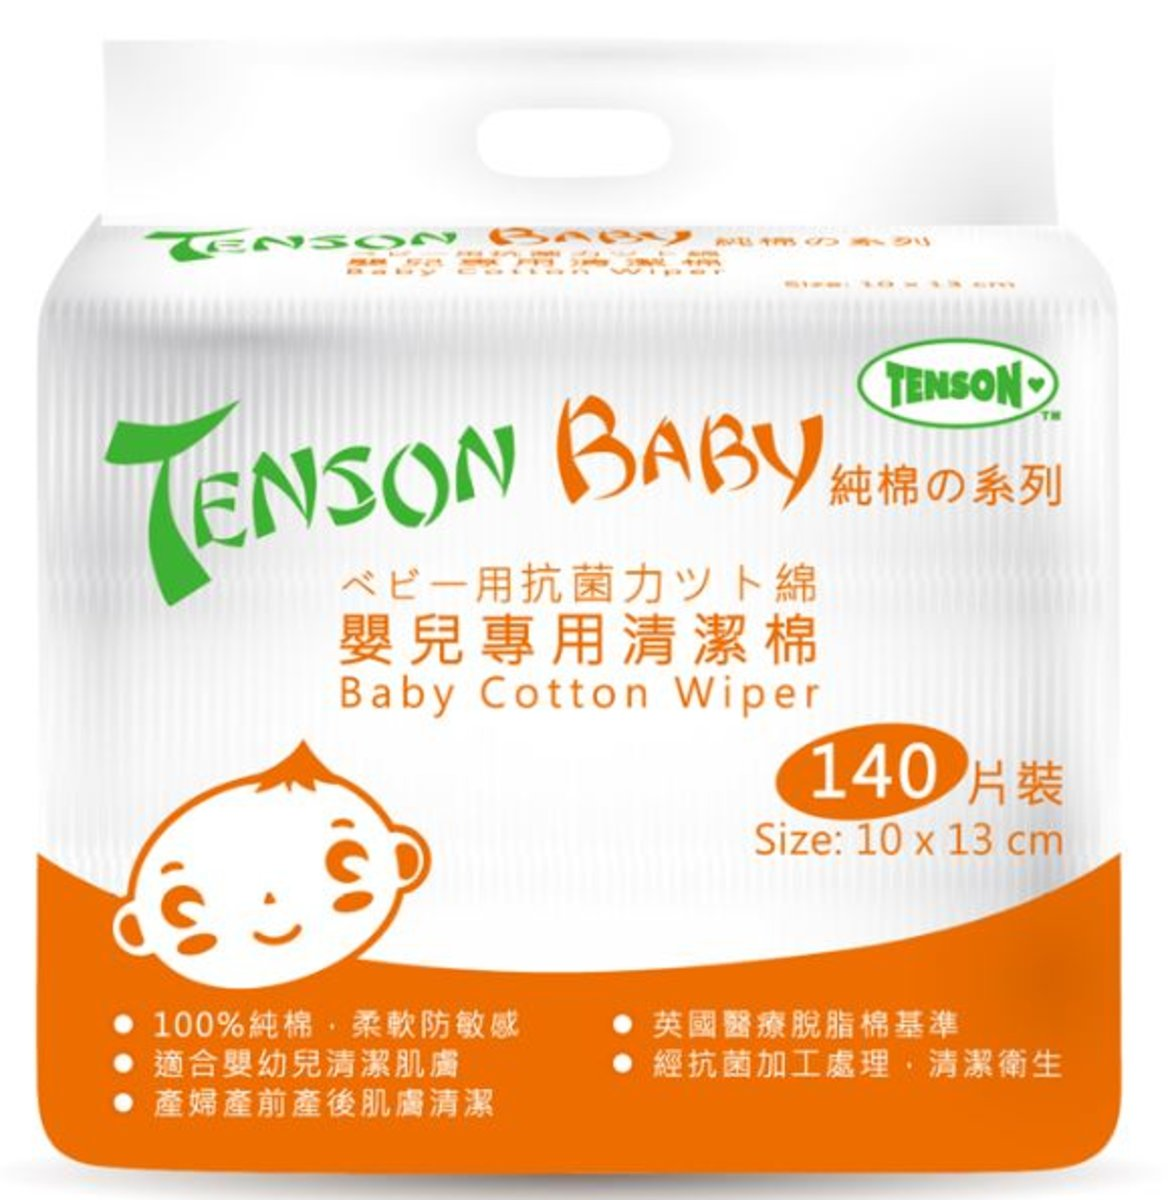 BABY Cleaning Cotton (140pcs) x 1